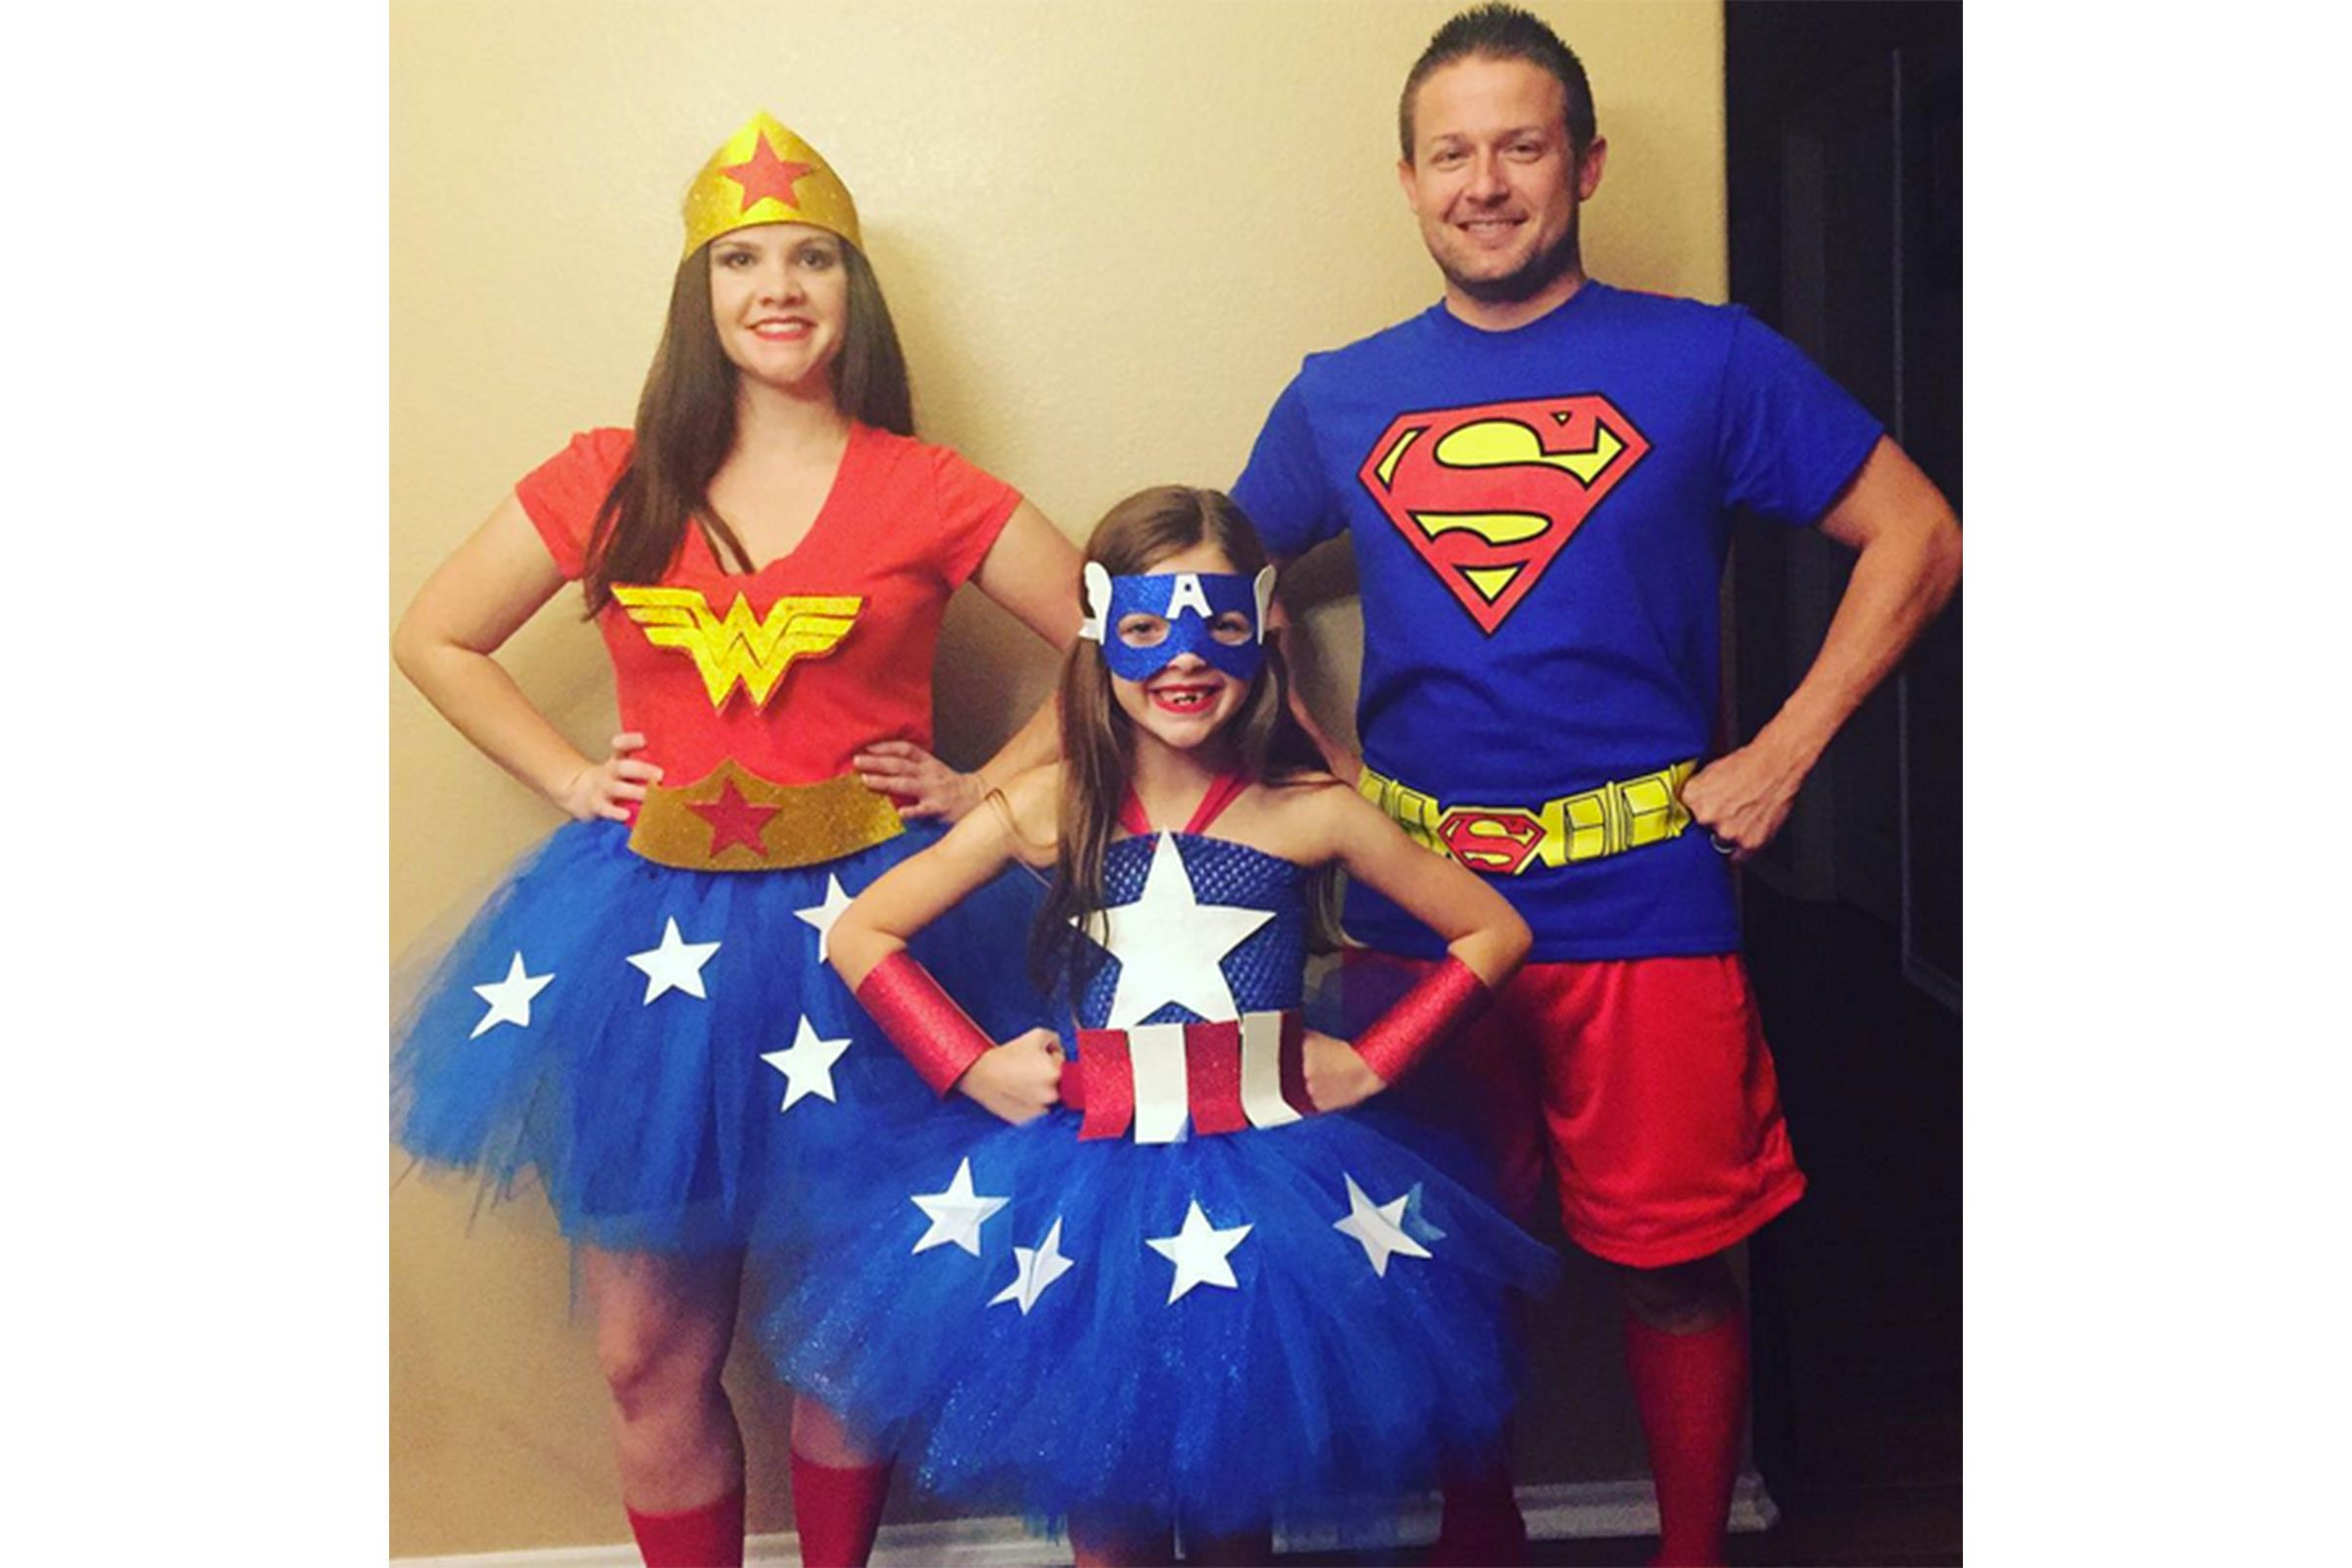 Superhero family  sc 1 st  Readeru0027s Digest & 15 Halloween Costume Ideas for Couples | Readeru0027s Digest